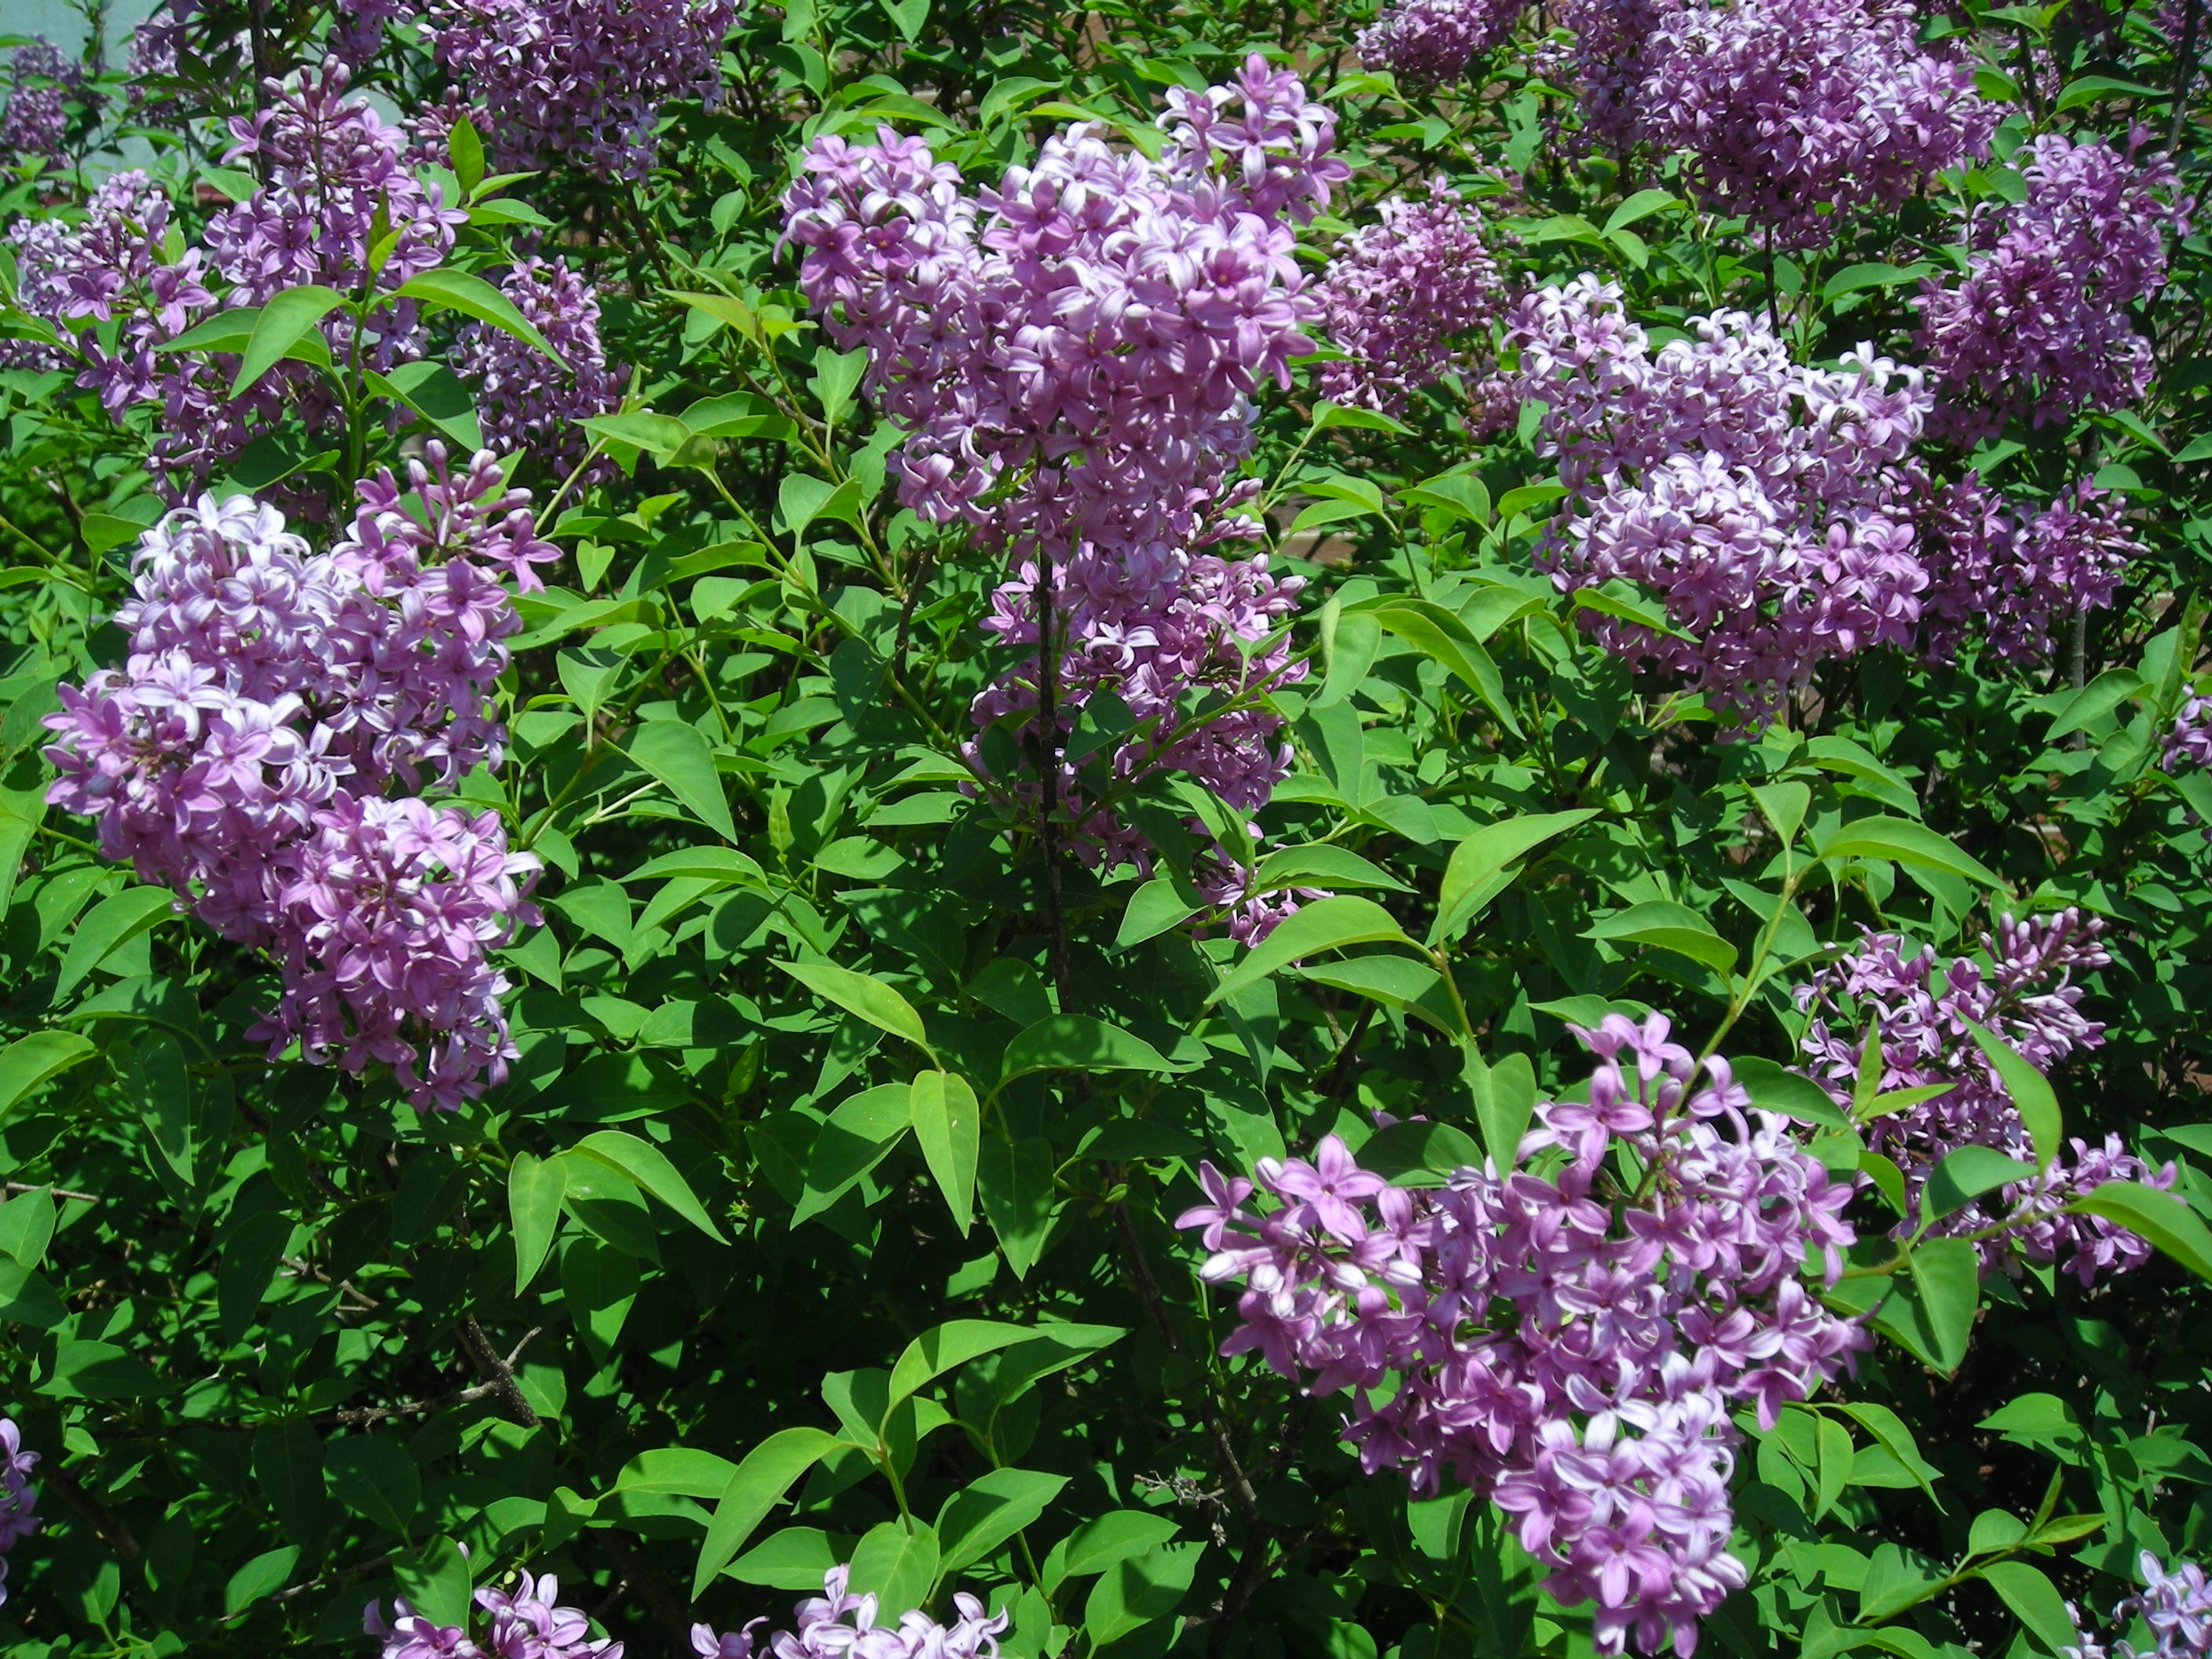 Flowering Bushes Notes From Shellycentral